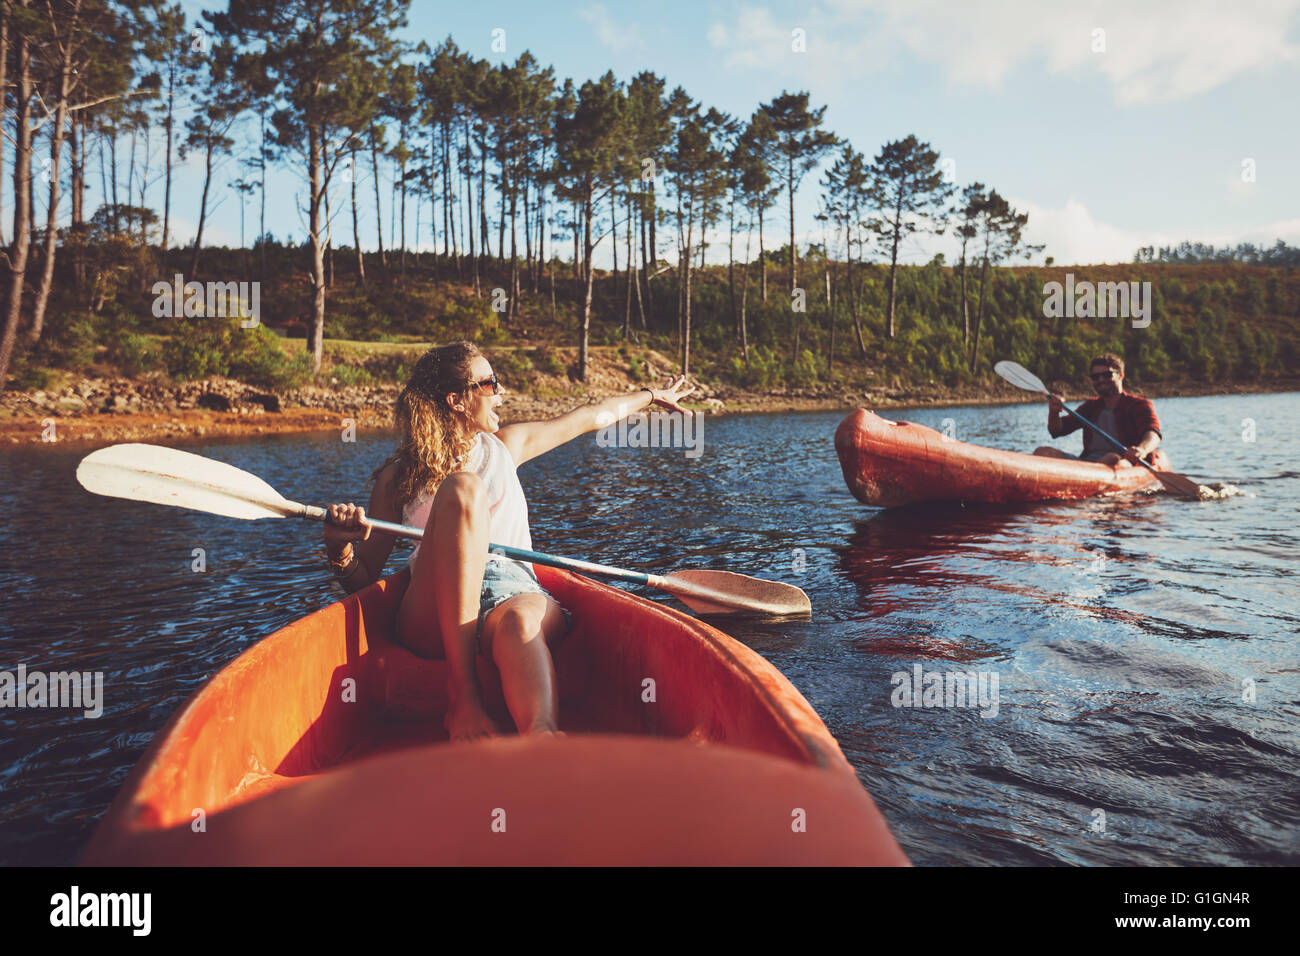 Young couple canoeing on the lake. Young kayakers enjoying a day at the lake. - Stock Image